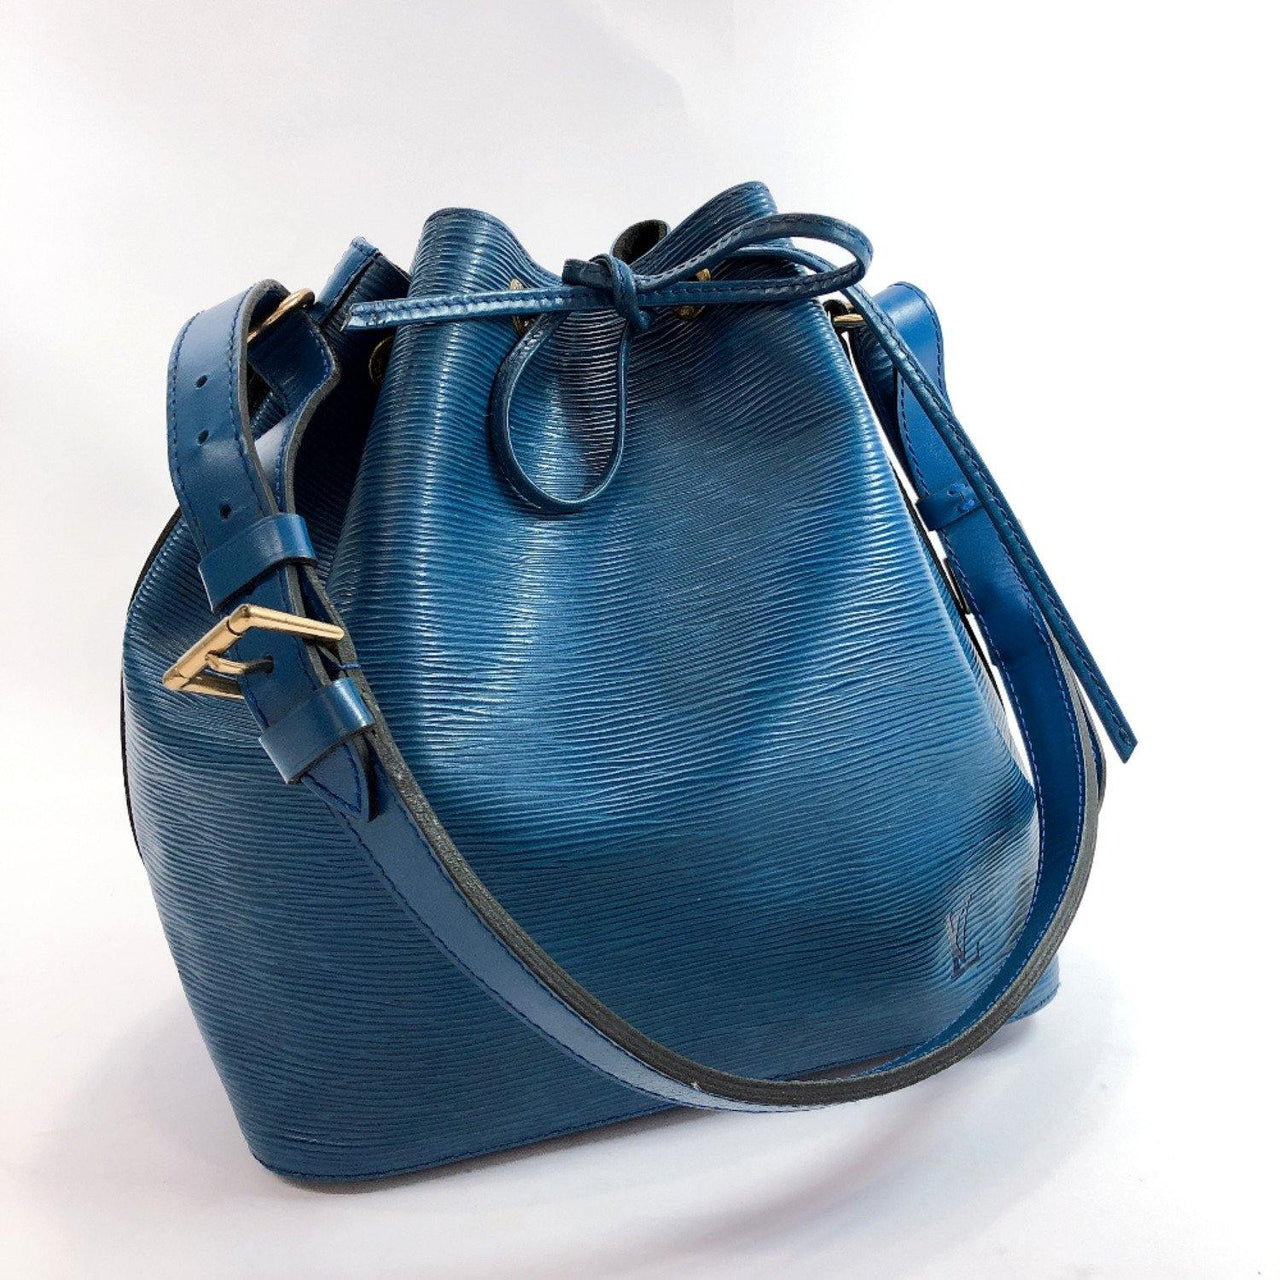 LOUIS VUITTON Shoulder Bag M44105 Petit Noe Epi Leather blue Women Used